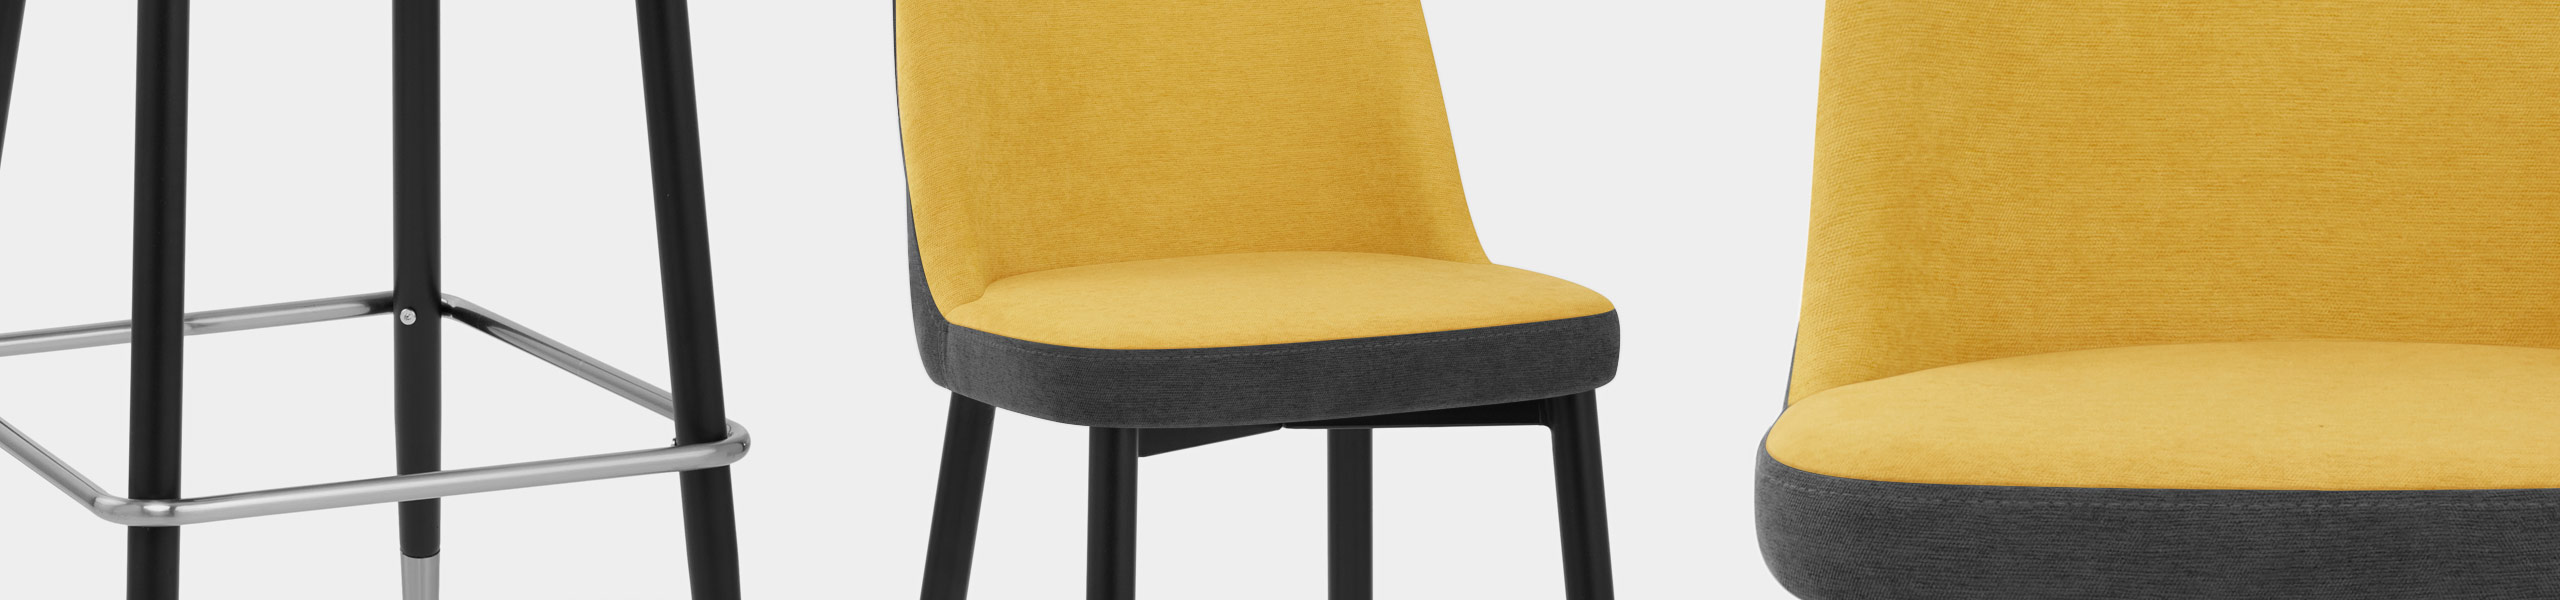 Hudson Stool Charcoal & Yellow Fabric Video Banner